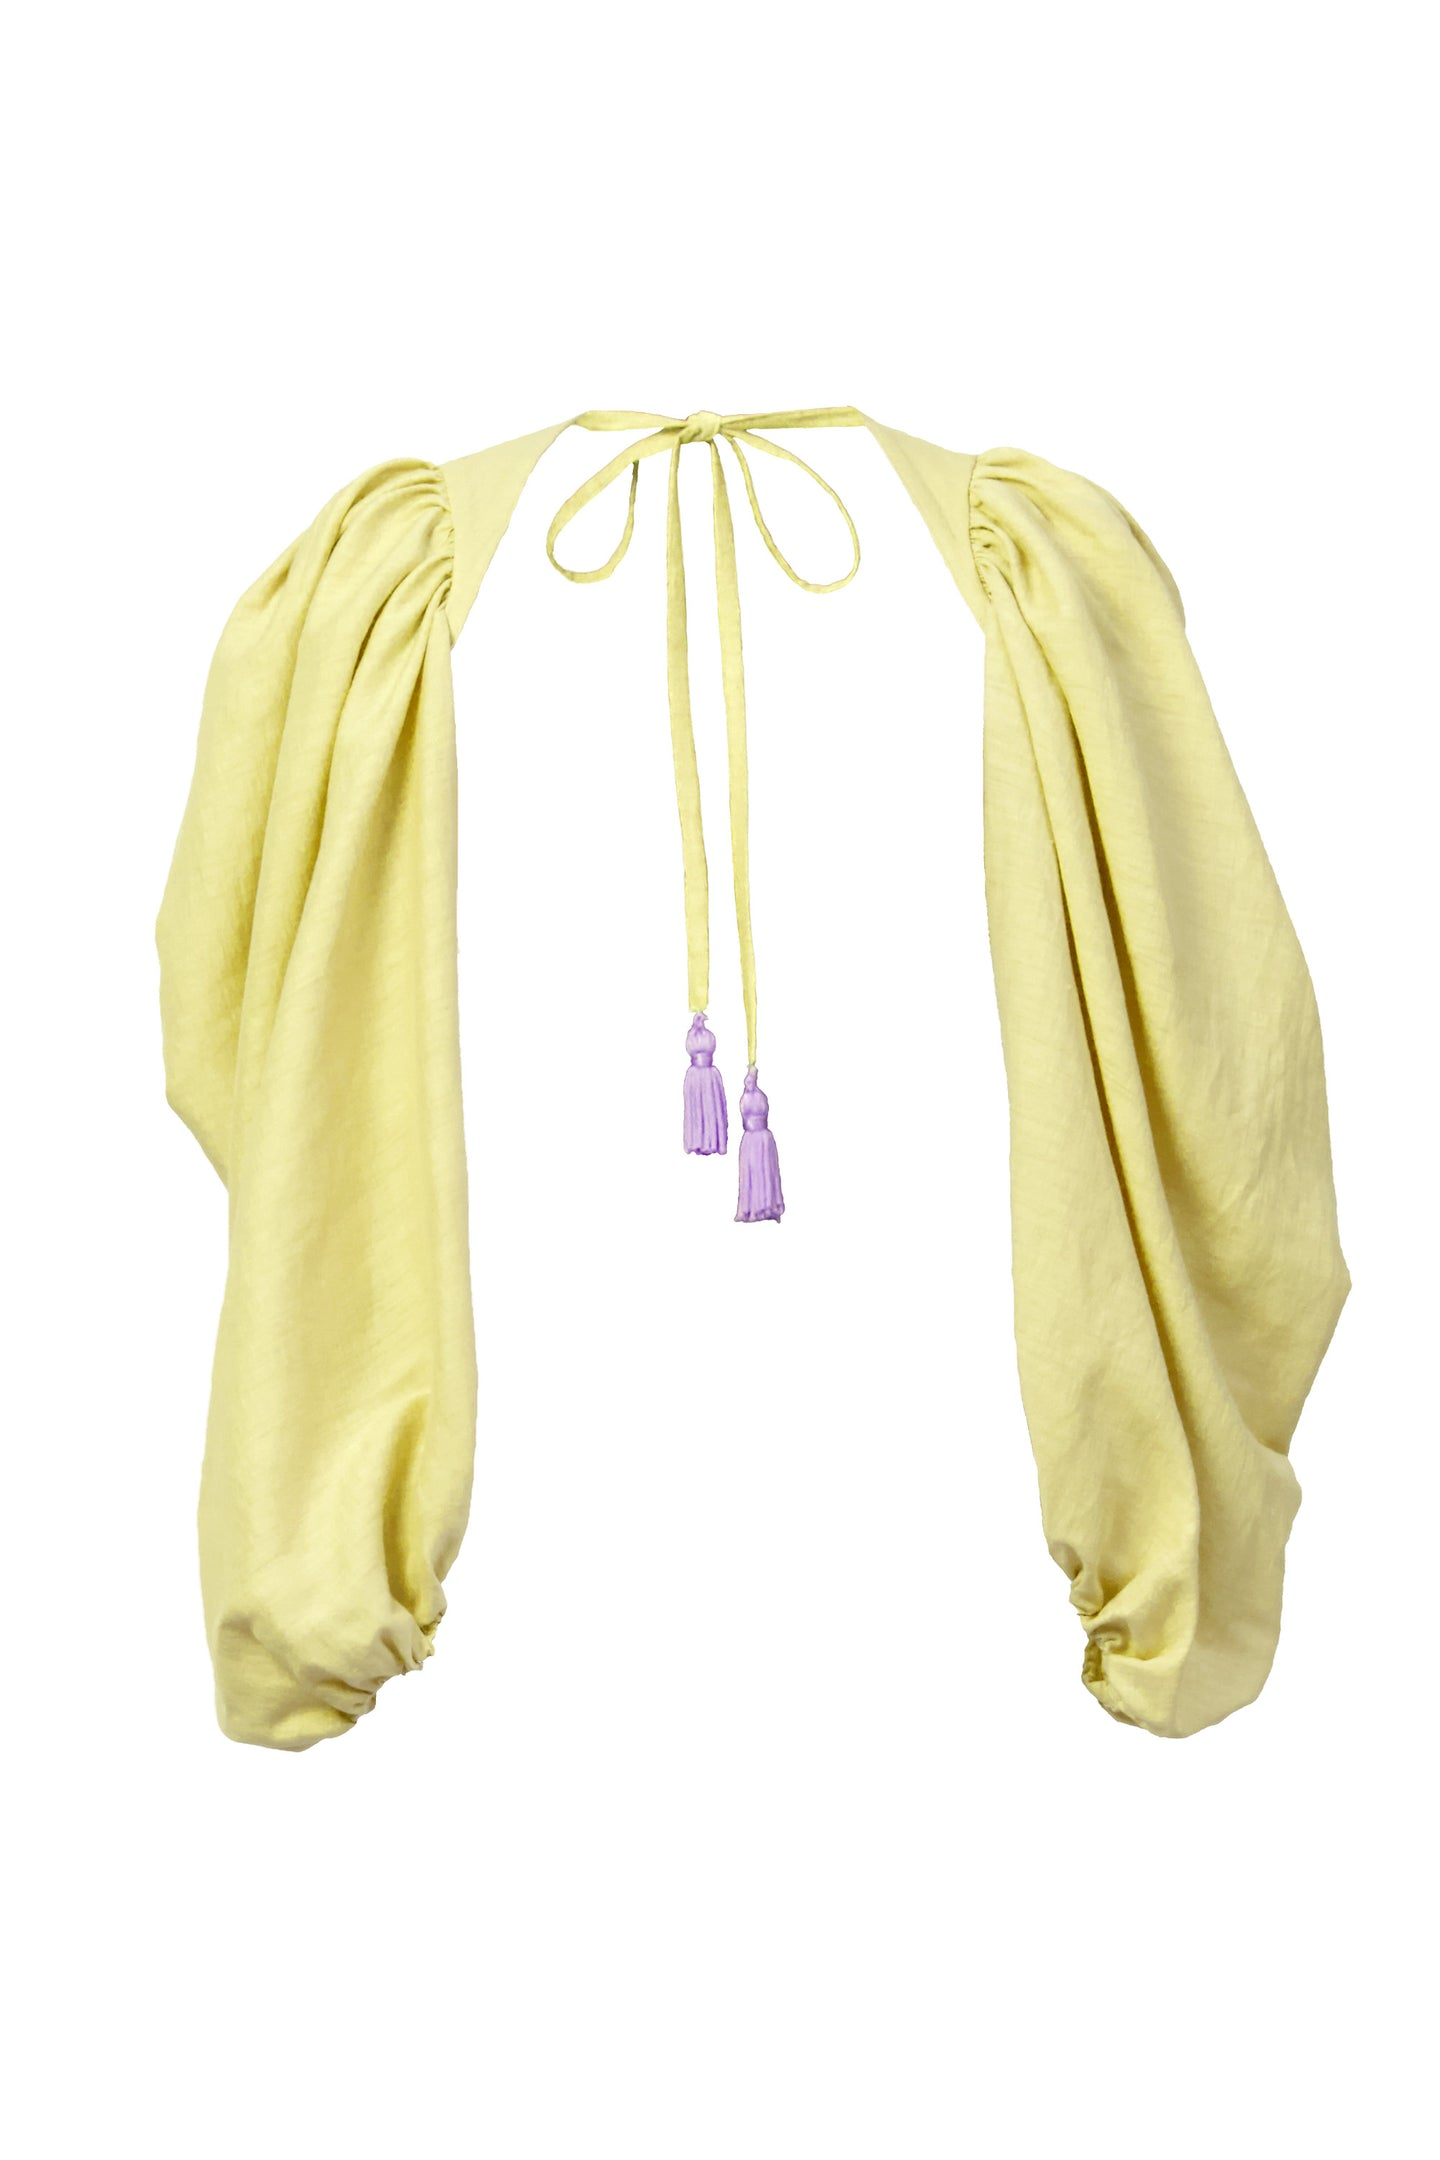 Shine Linen Volume Arm | Citrine